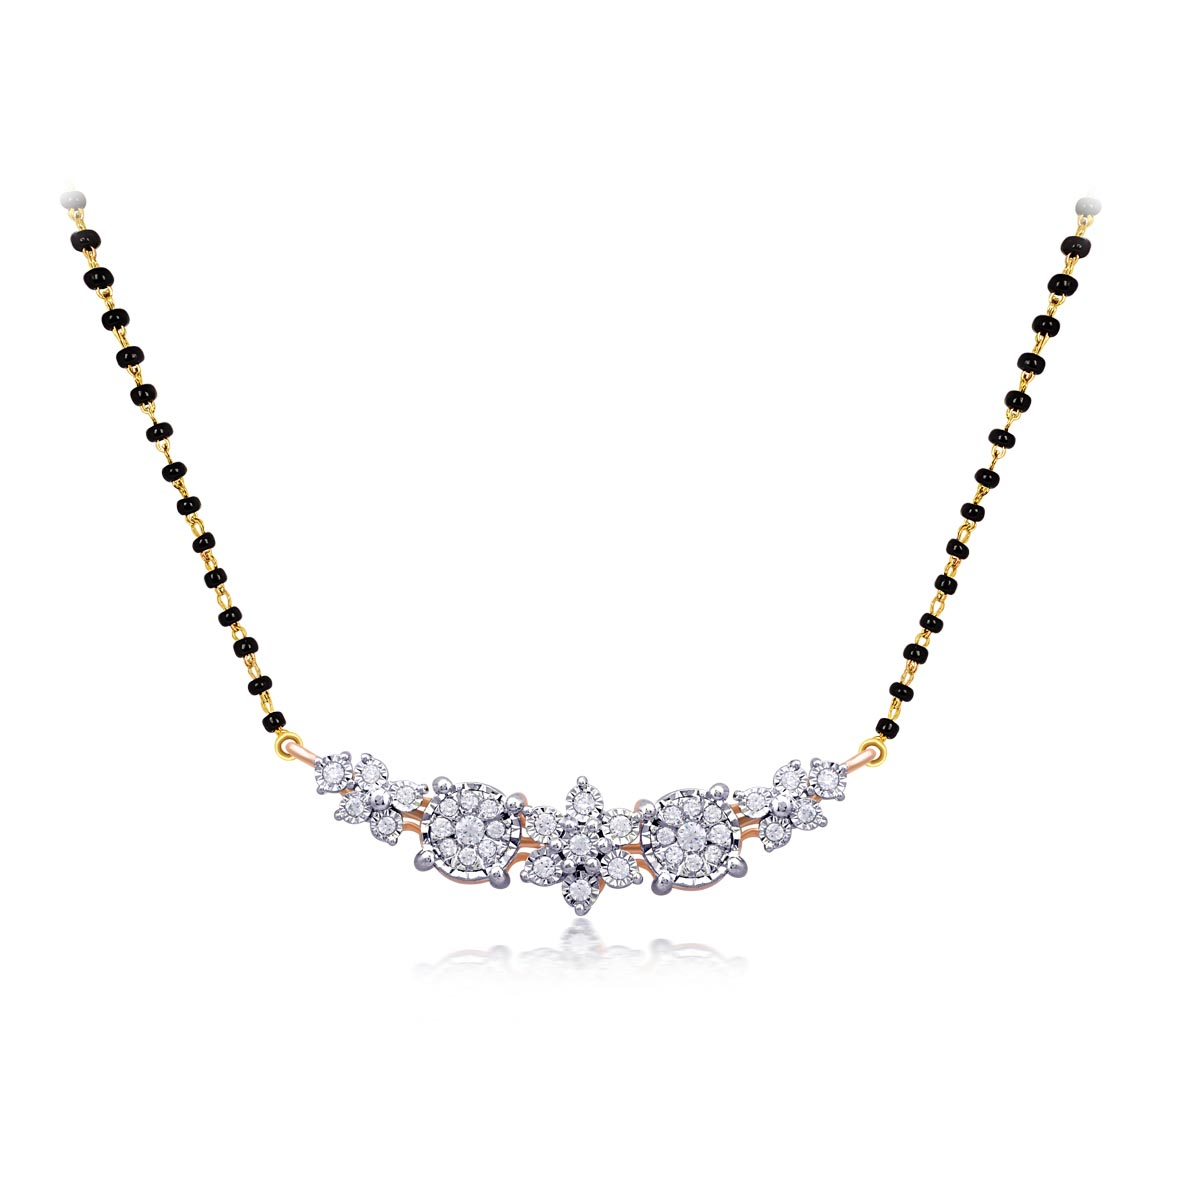 Hearty Connection Mangalsutra Pendant